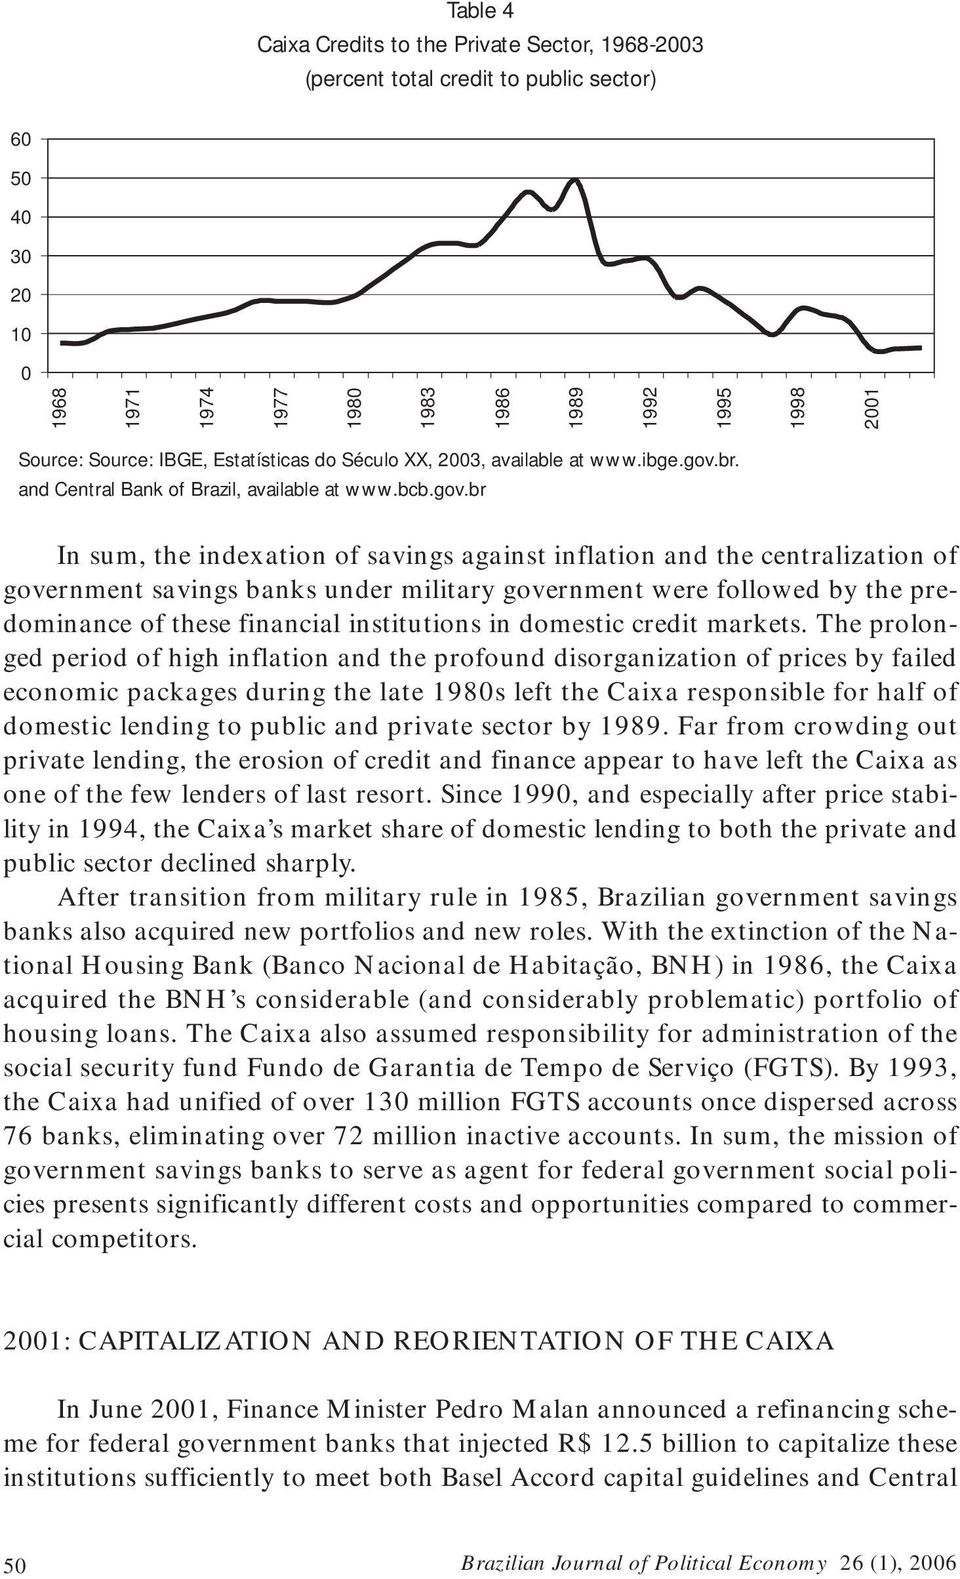 br. and Central Bank of Brazil, available at www.bcb.gov.